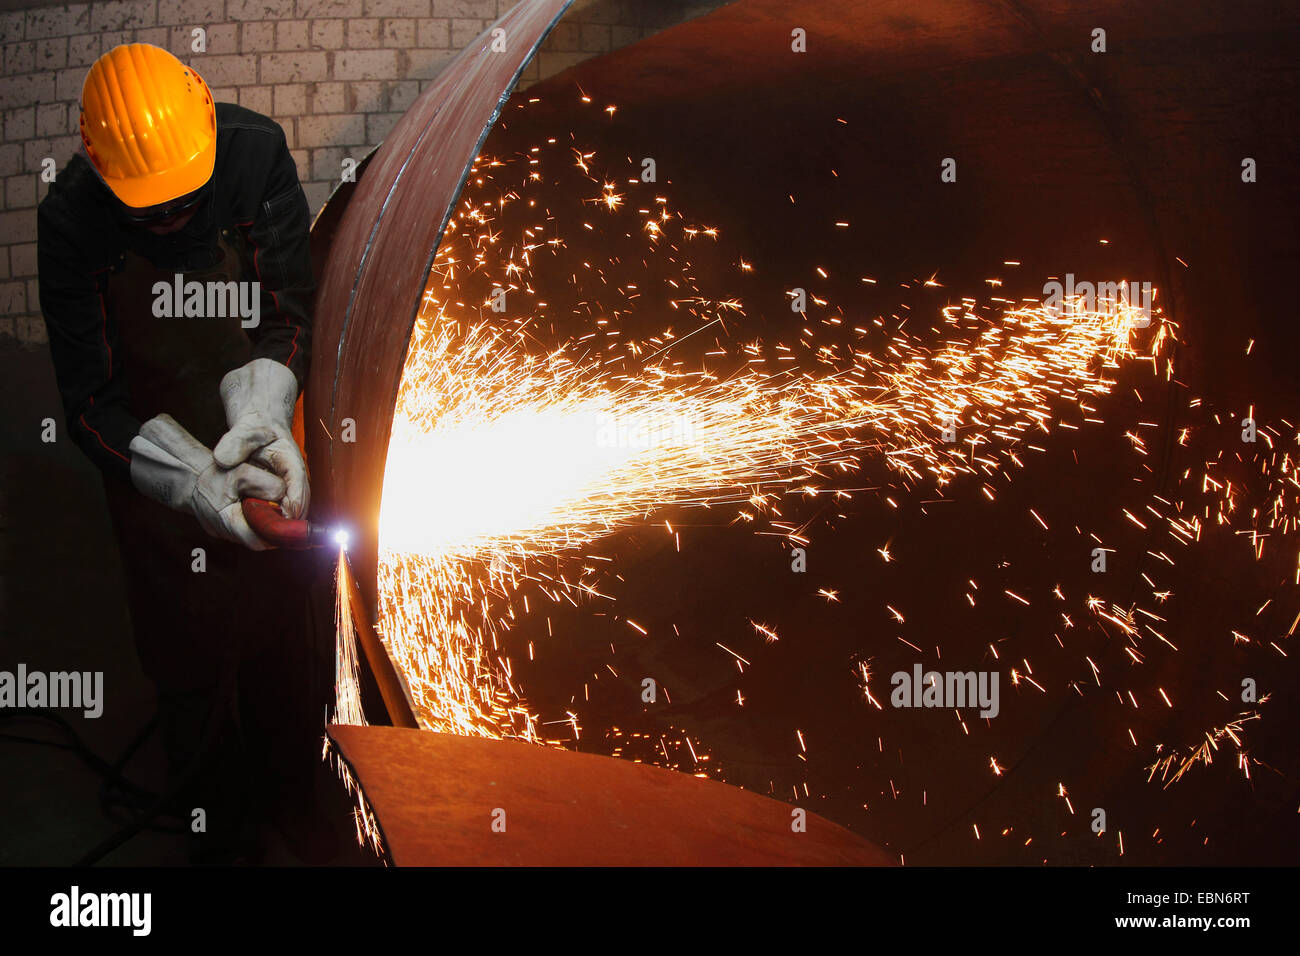 craftsman dismantles an oil tank with a plasma cutter - Stock Image